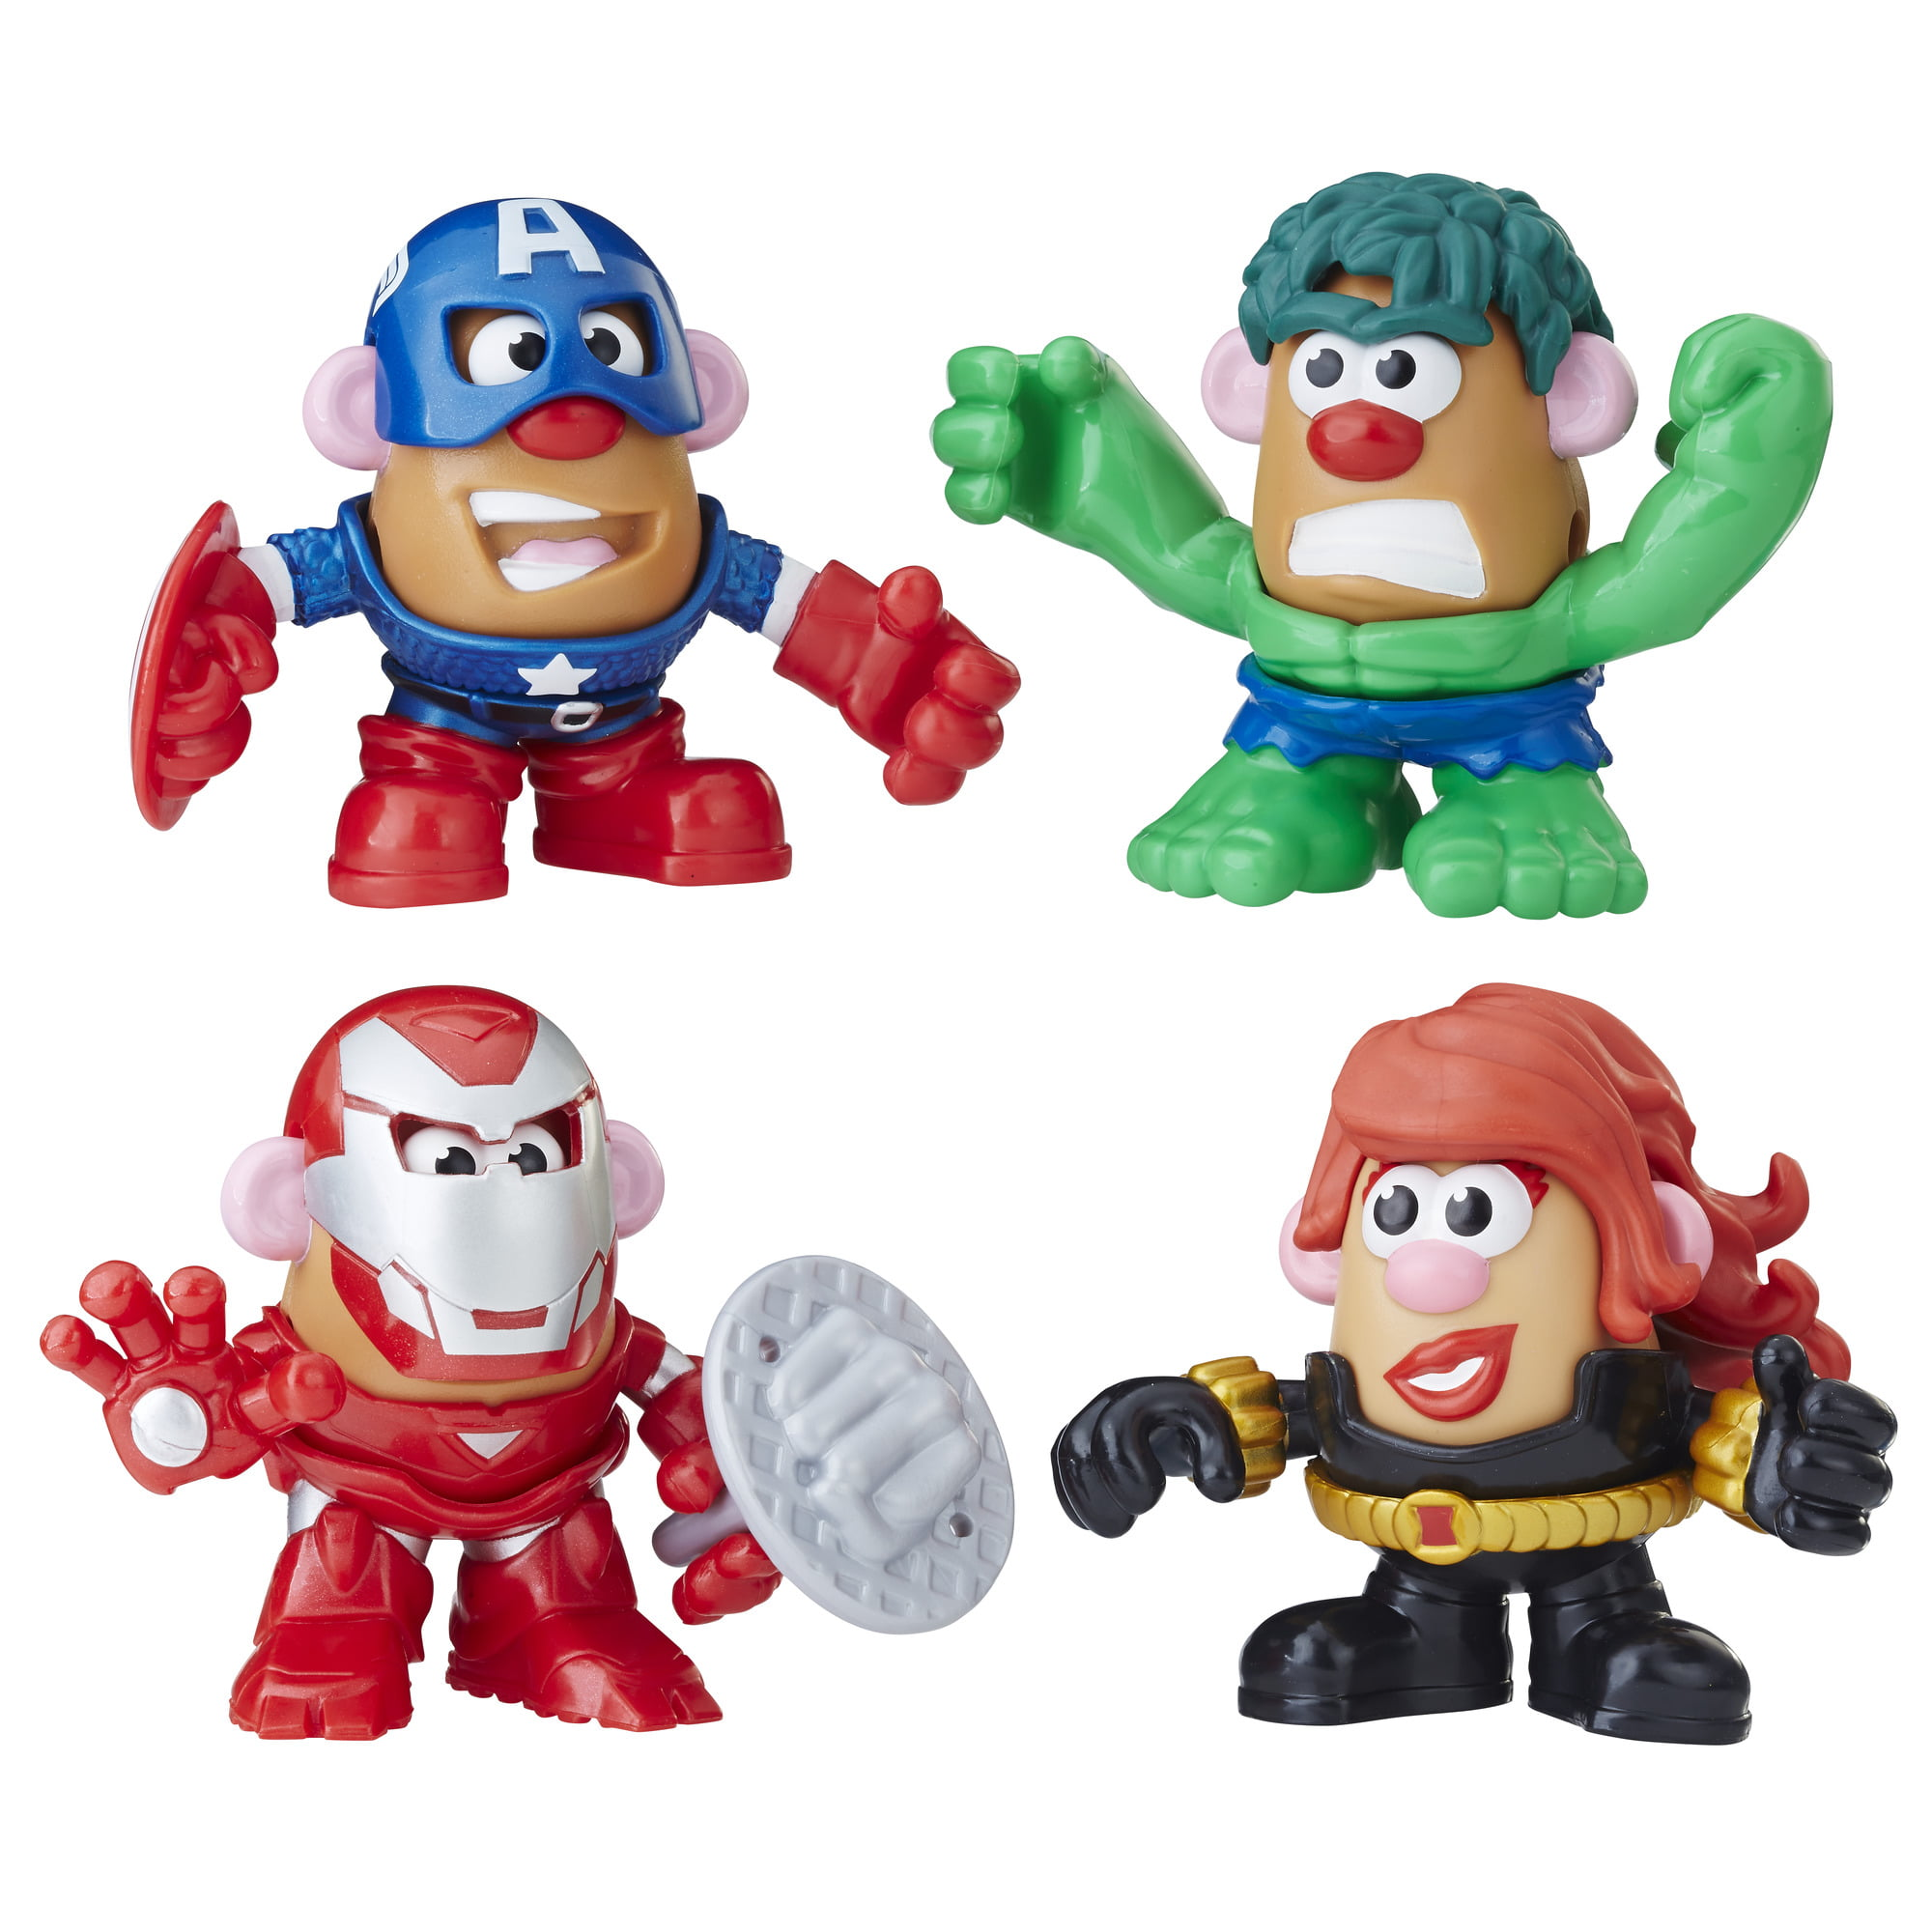 Playskool Friends Mr. Potato Head Marvel Mash-Ups Super Hero Rally Pack by Hasbro Inc.